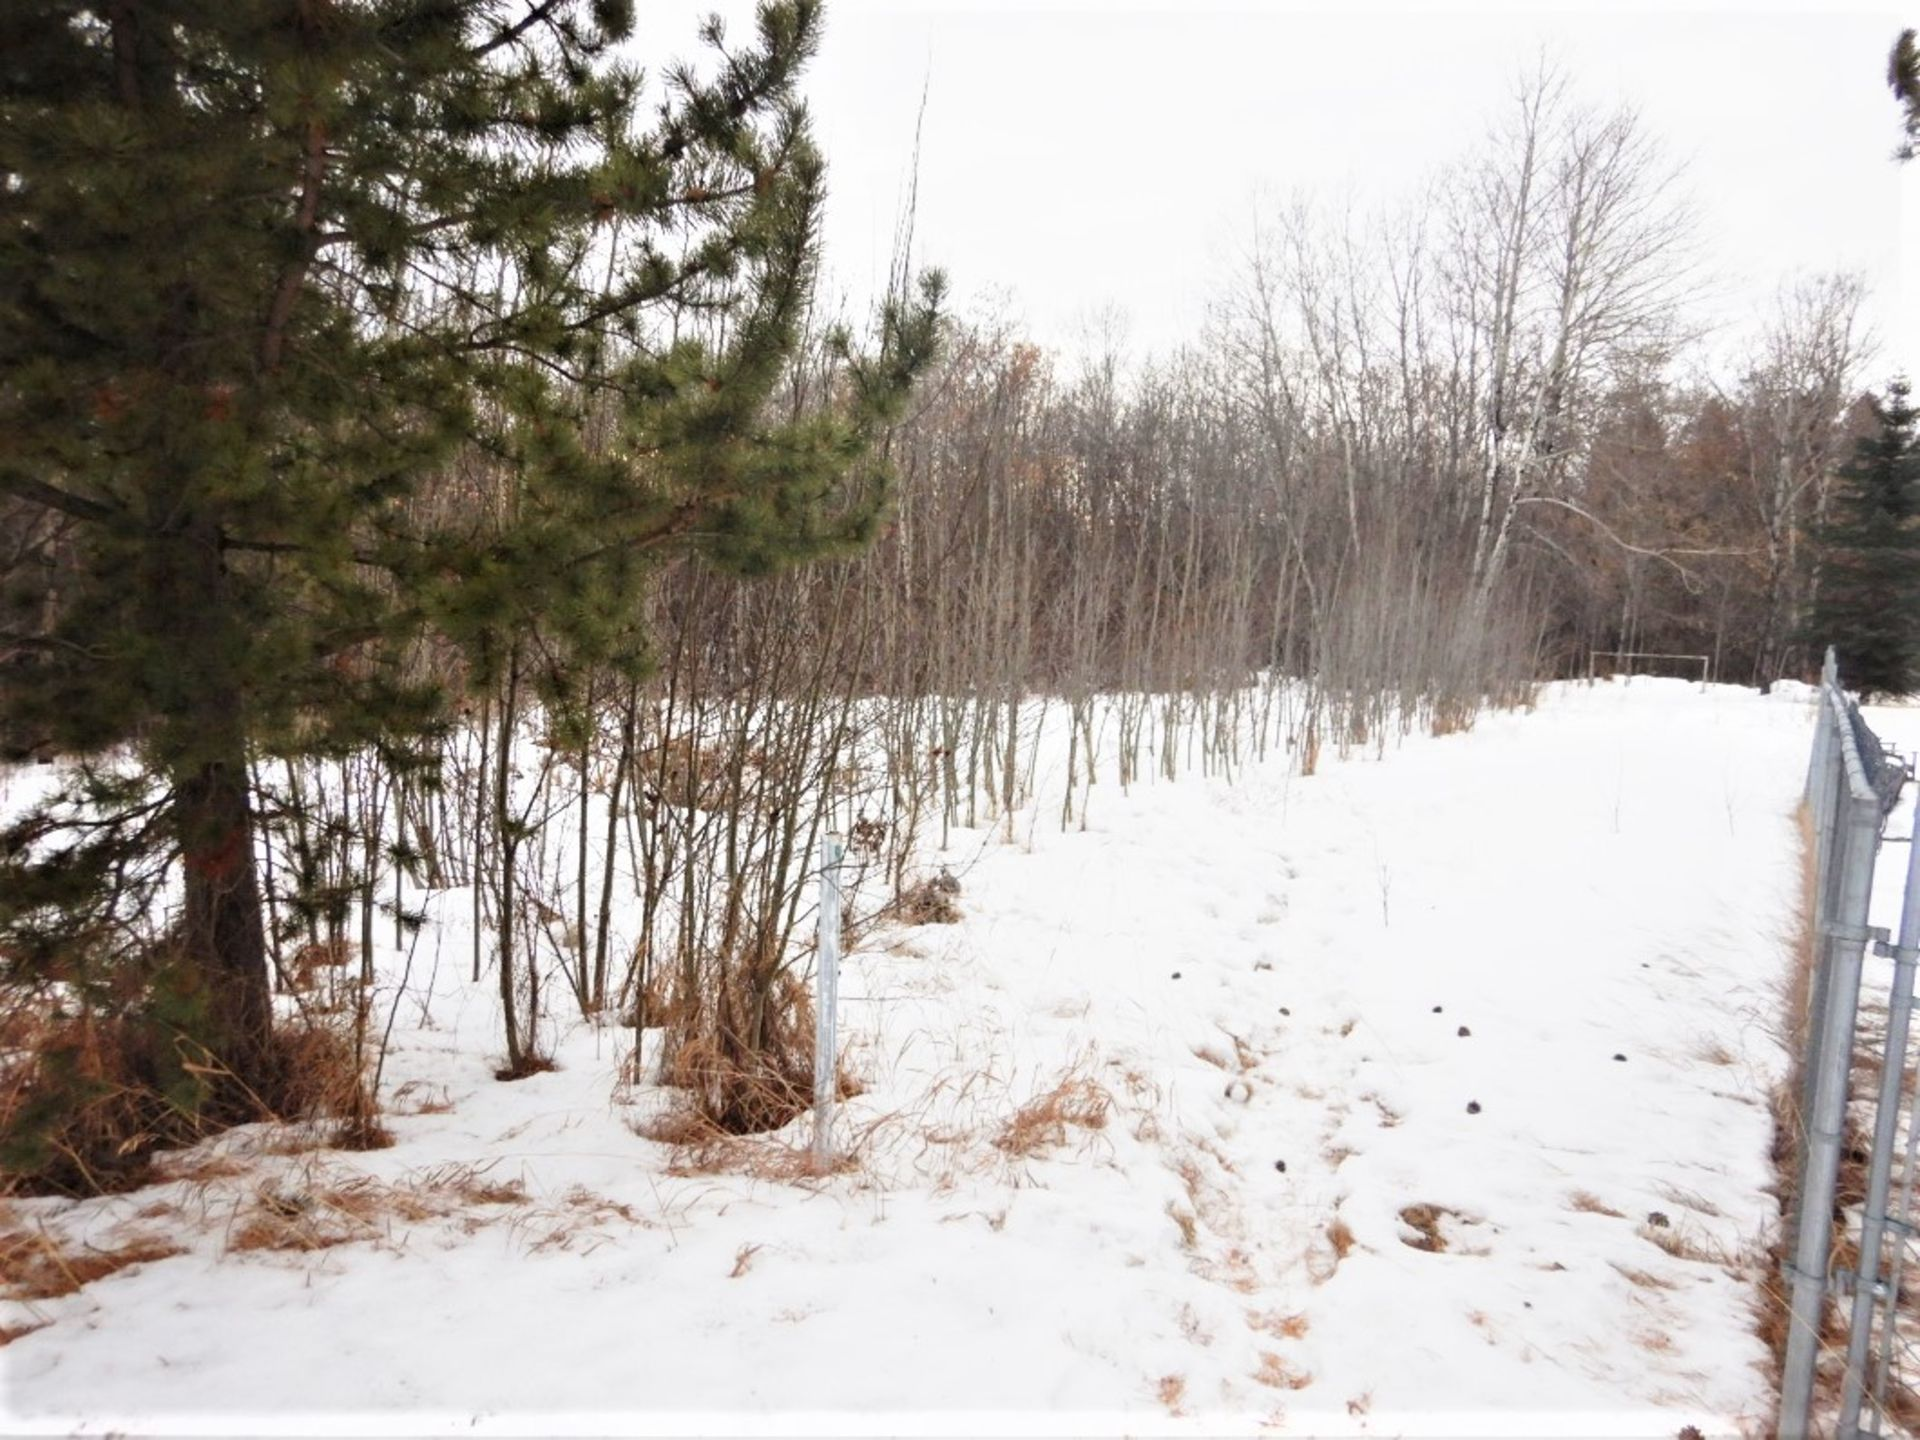 BARE LOT IN THE VILLAGE OF MIRROR, ALBERTA - LEGAL DESCRIPTION: PLAN 0728572 BLK 40 LOT 38 *ONLY - Image 3 of 4